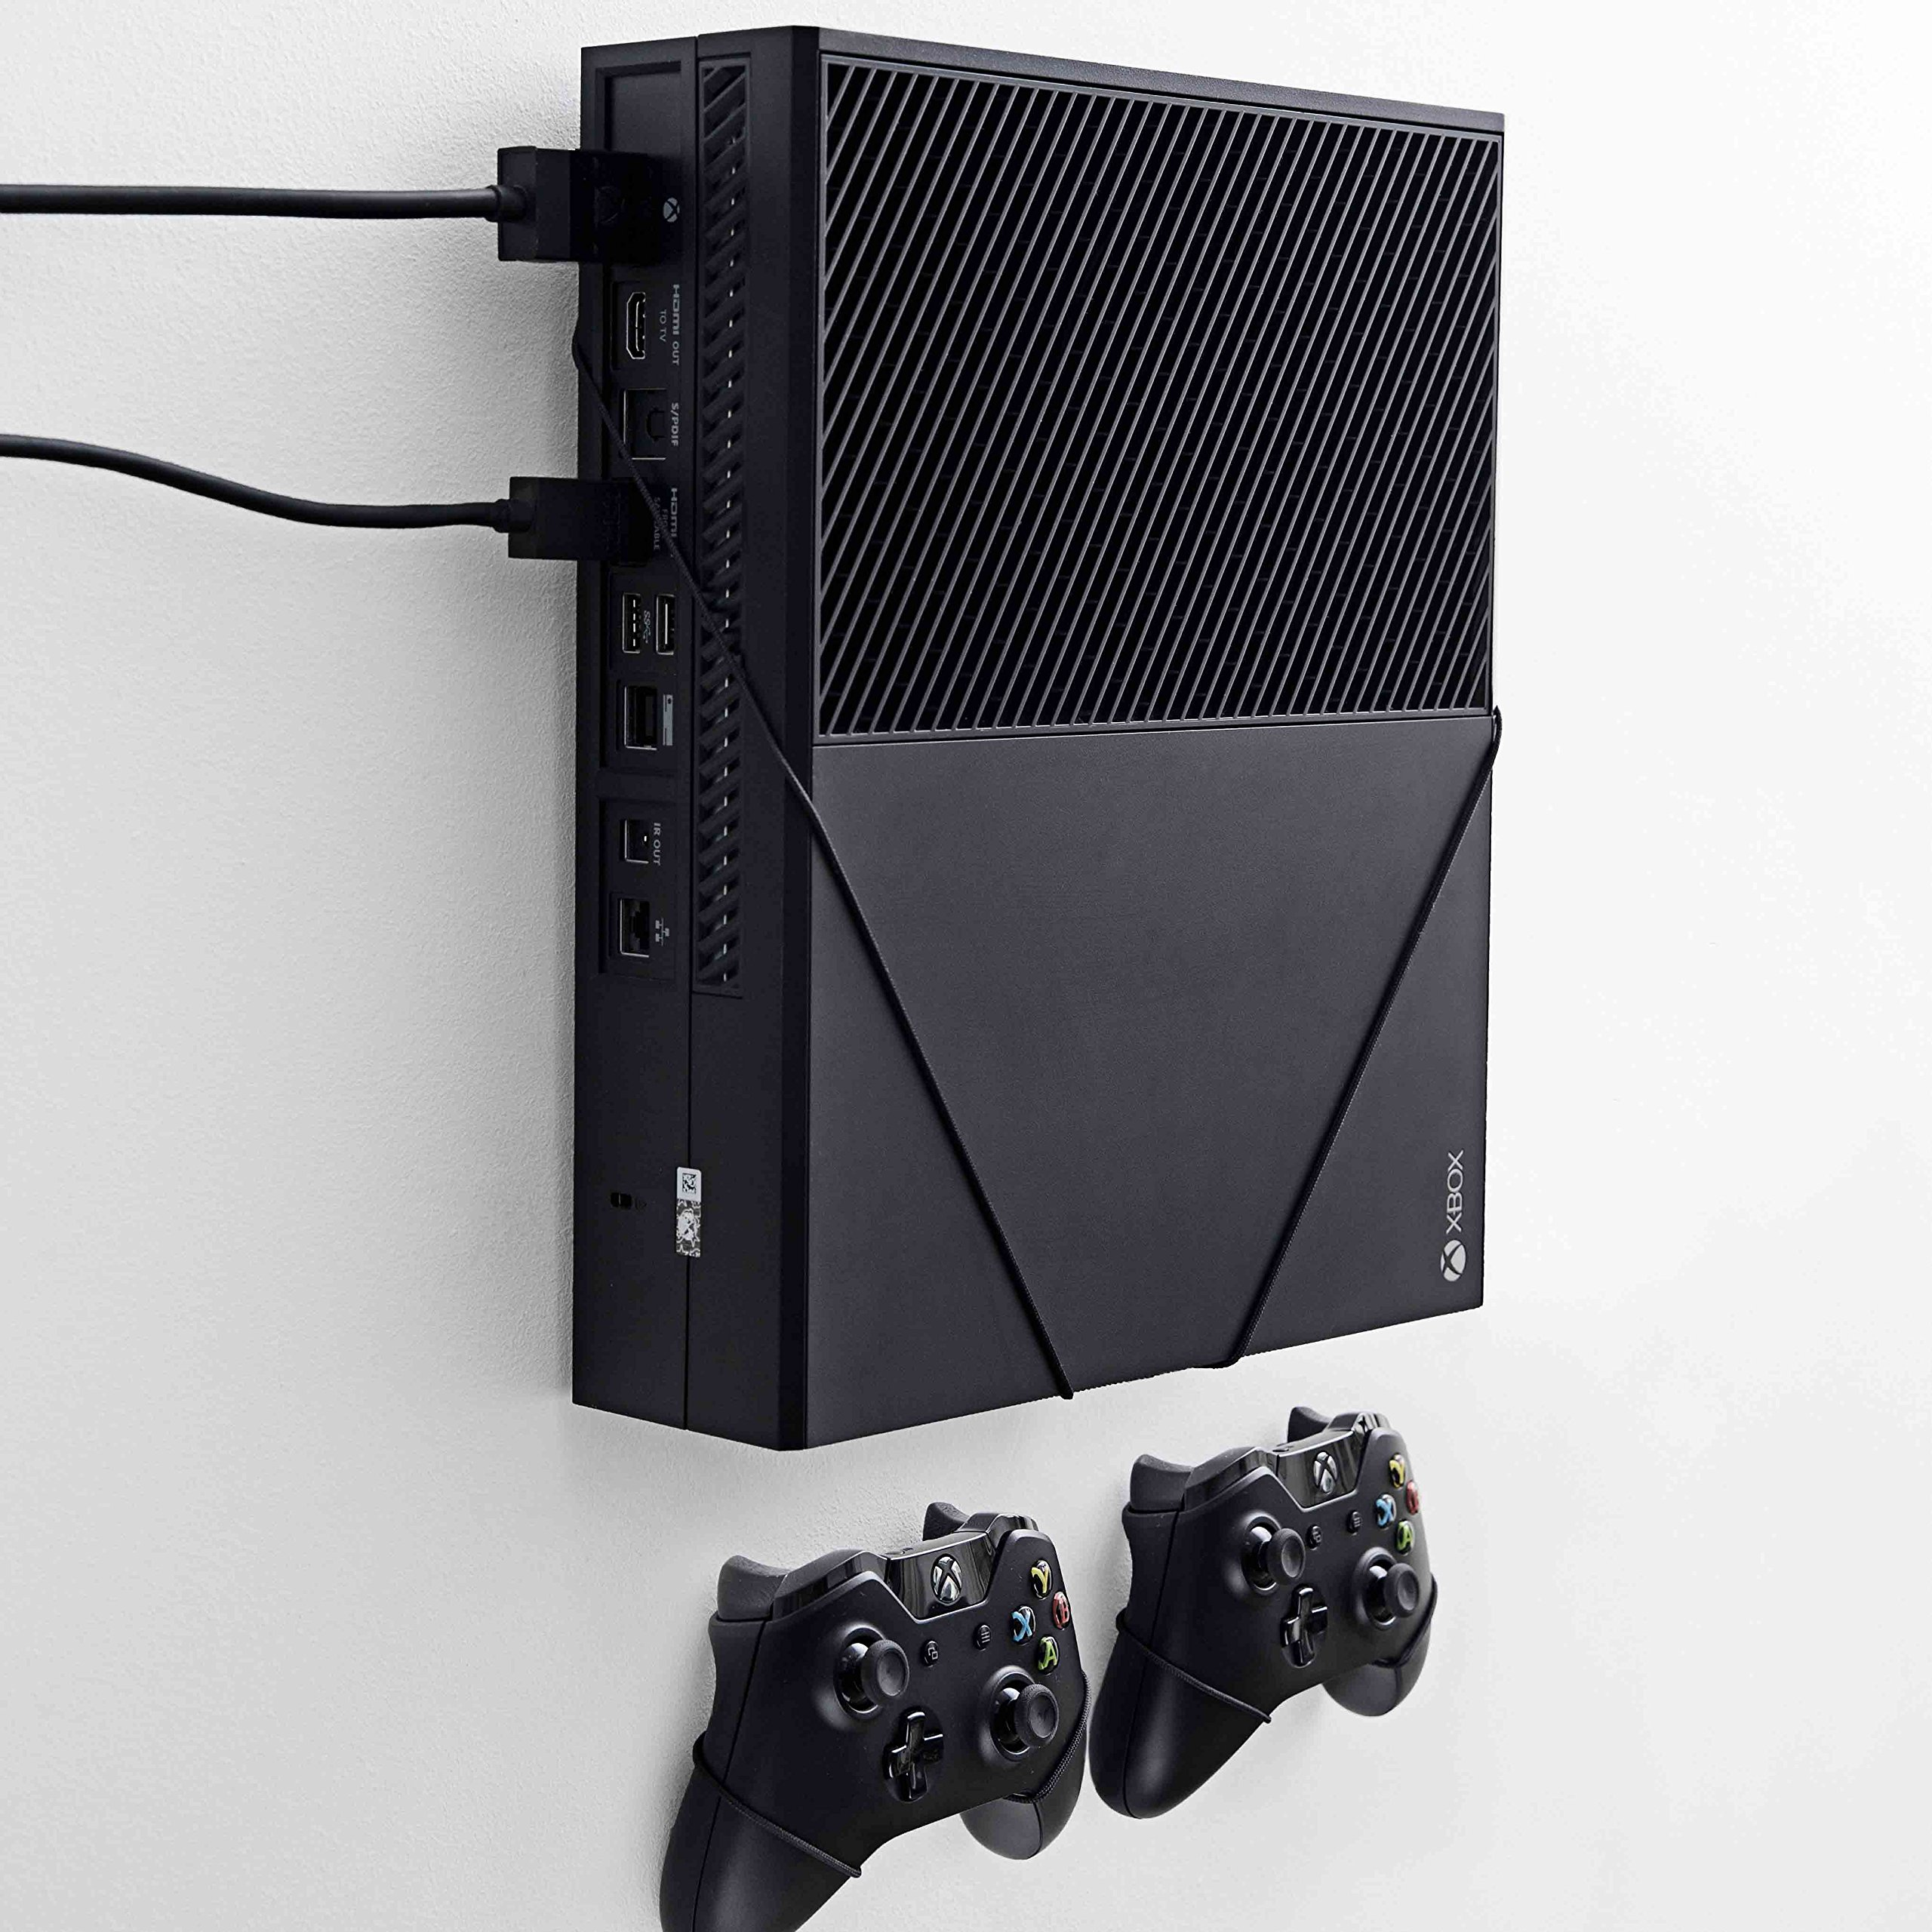 Wall mount for Xbox One Original by FLOATING GRIP® - This package (BUNDLE) incl. mounts for 1x console and 2x controllers. Color: Black. Patent pending and proprietary design by FLOATING GRIP® by FLOATING GRIP®